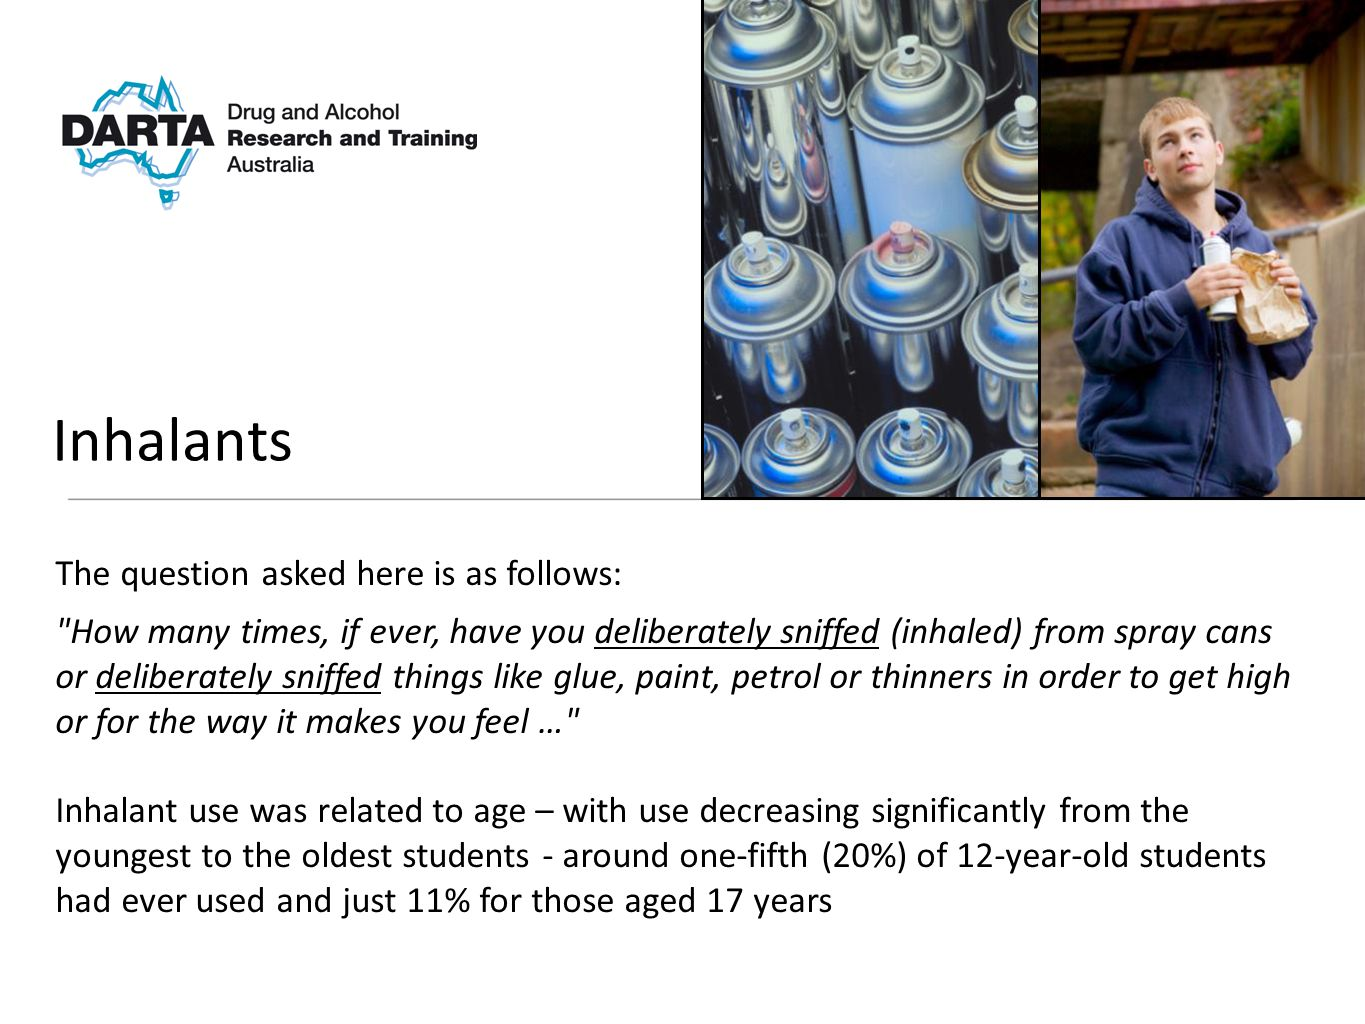 The question asked here is as follows: How many times, if ever, have you deliberately sniffed (inhaled) from spray cans or deliberately sniffed things like glue, paint, petrol or thinners in order to get high or for the way it makes you feel … Inhalant use was related to age – with use decreasing significantly from the youngest to the oldest students - around one-fifth (20%) of 12-year-old students had ever used and just 11% for those aged 17 years Inhalants